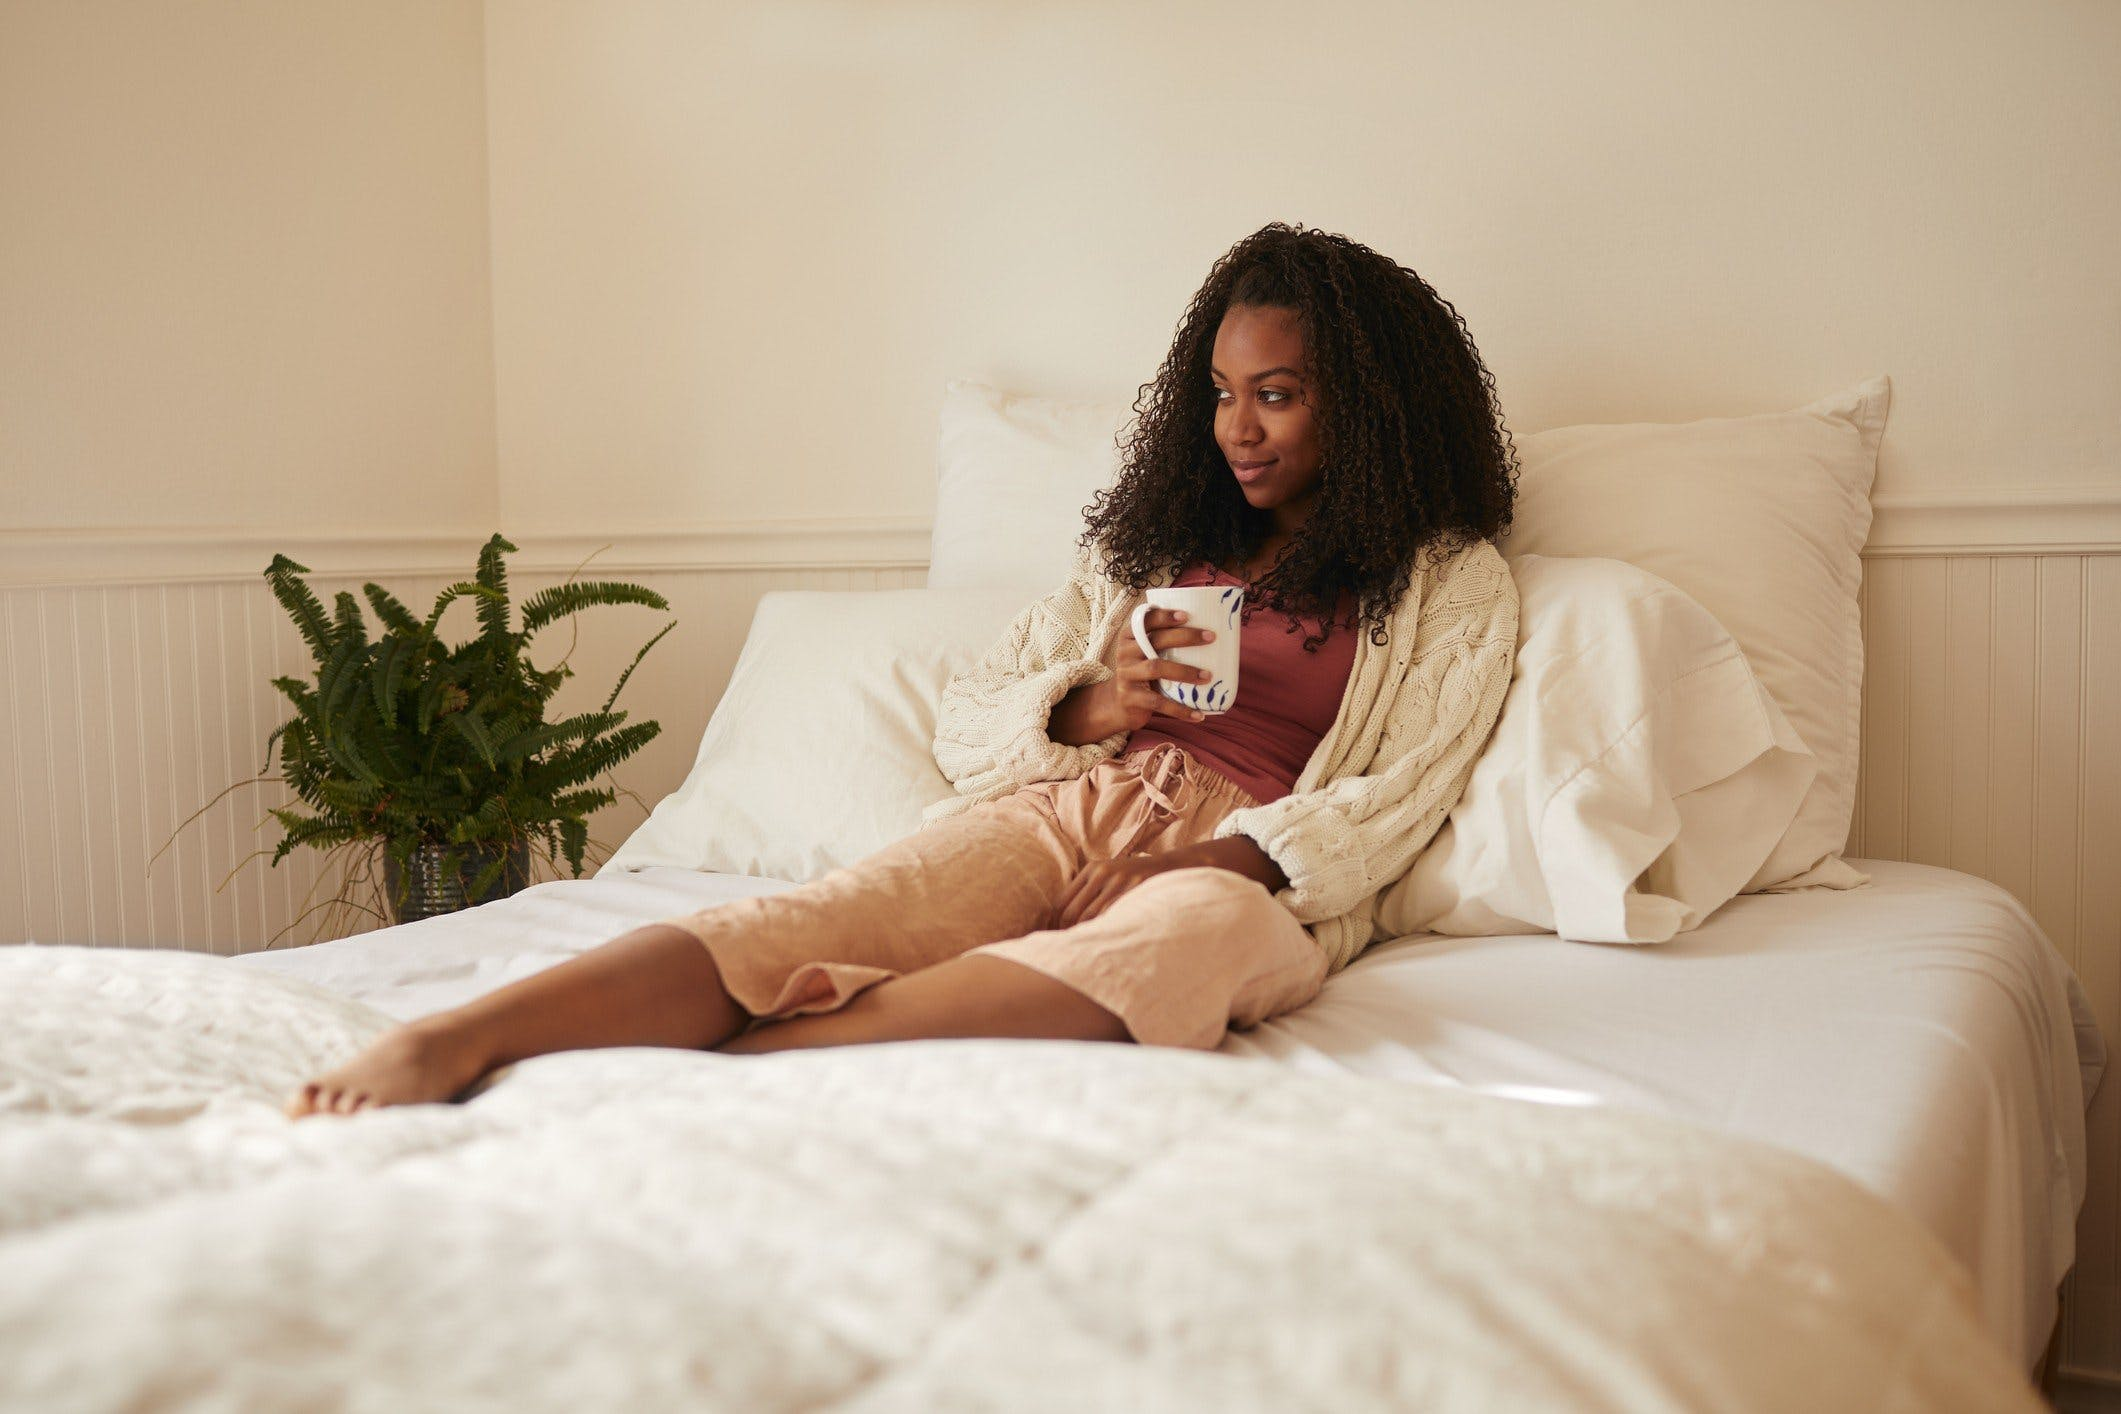 A Clinical Nutritionist Recommends 3 Foods That May Improve Your Sleep.